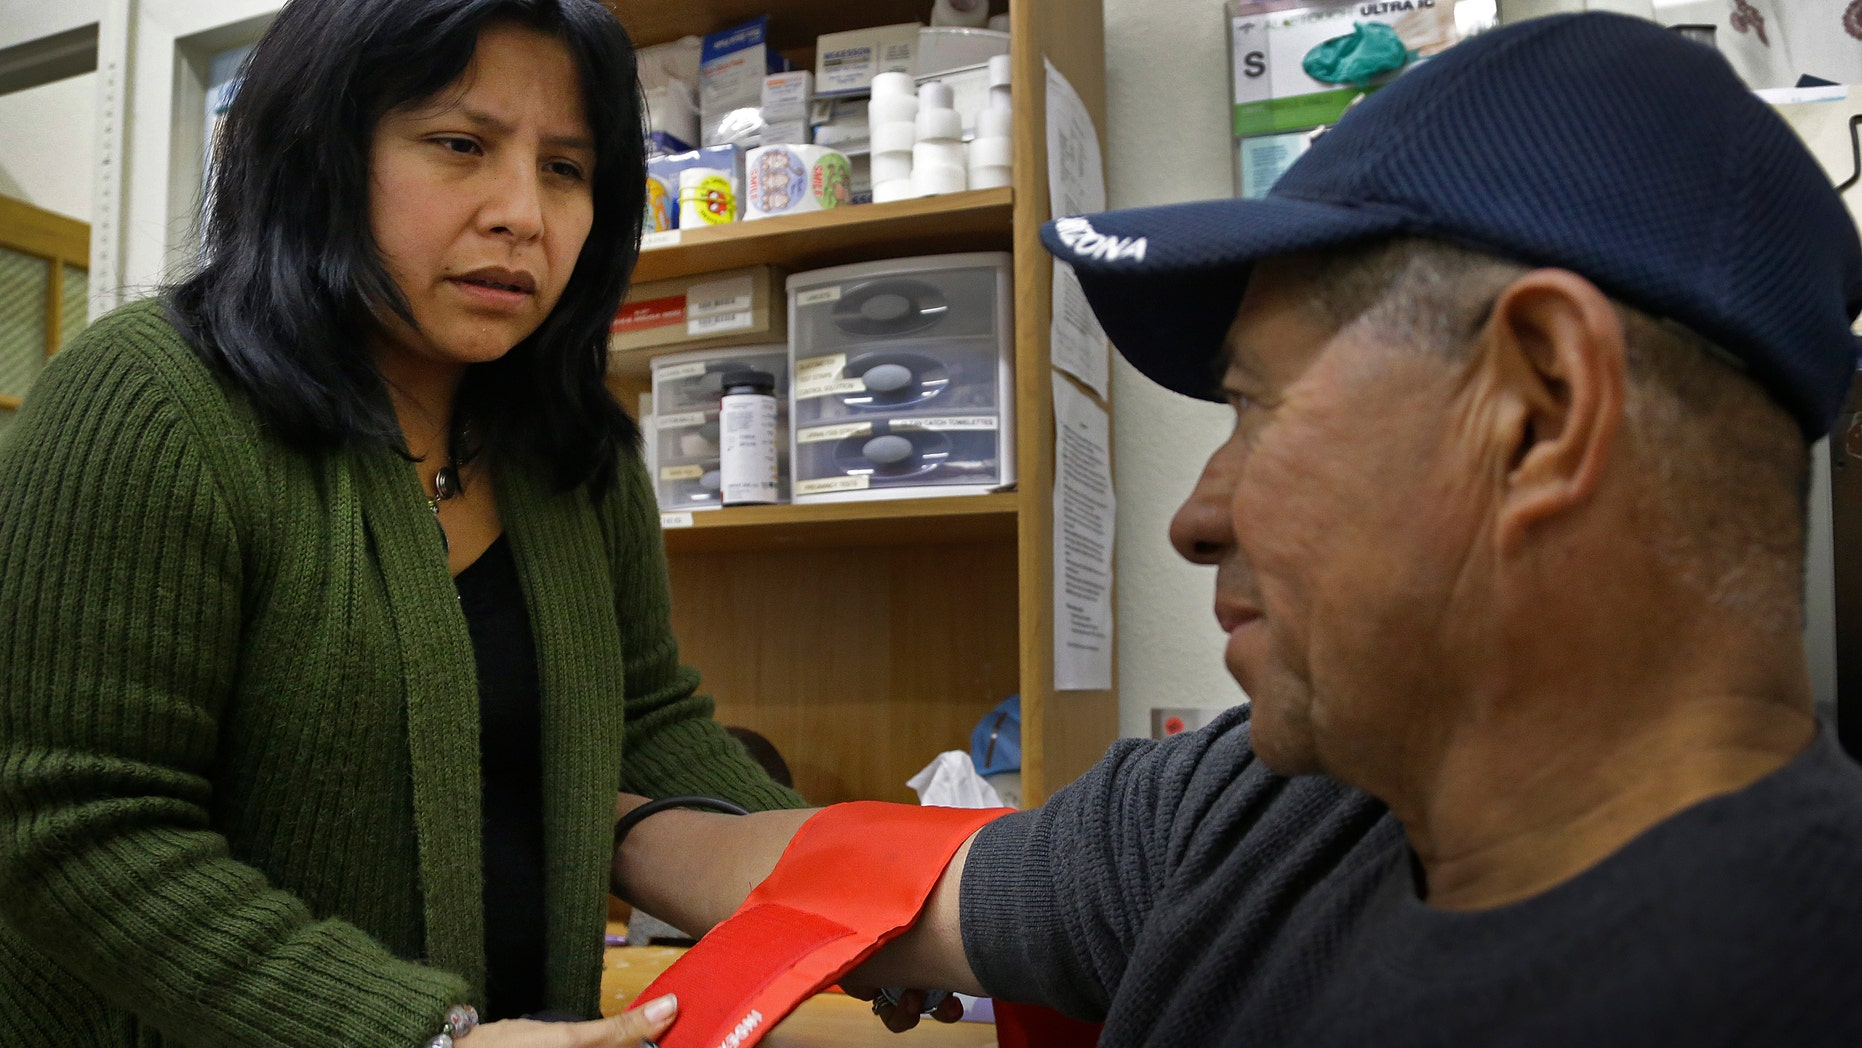 Laura Lopez, left, checks the blood pressure of Santos Aguilar Wednesday, Jan. 23, 2013, at the Street Level Health Project in Oakland, Calif. (AP Photo/Ben Margot)